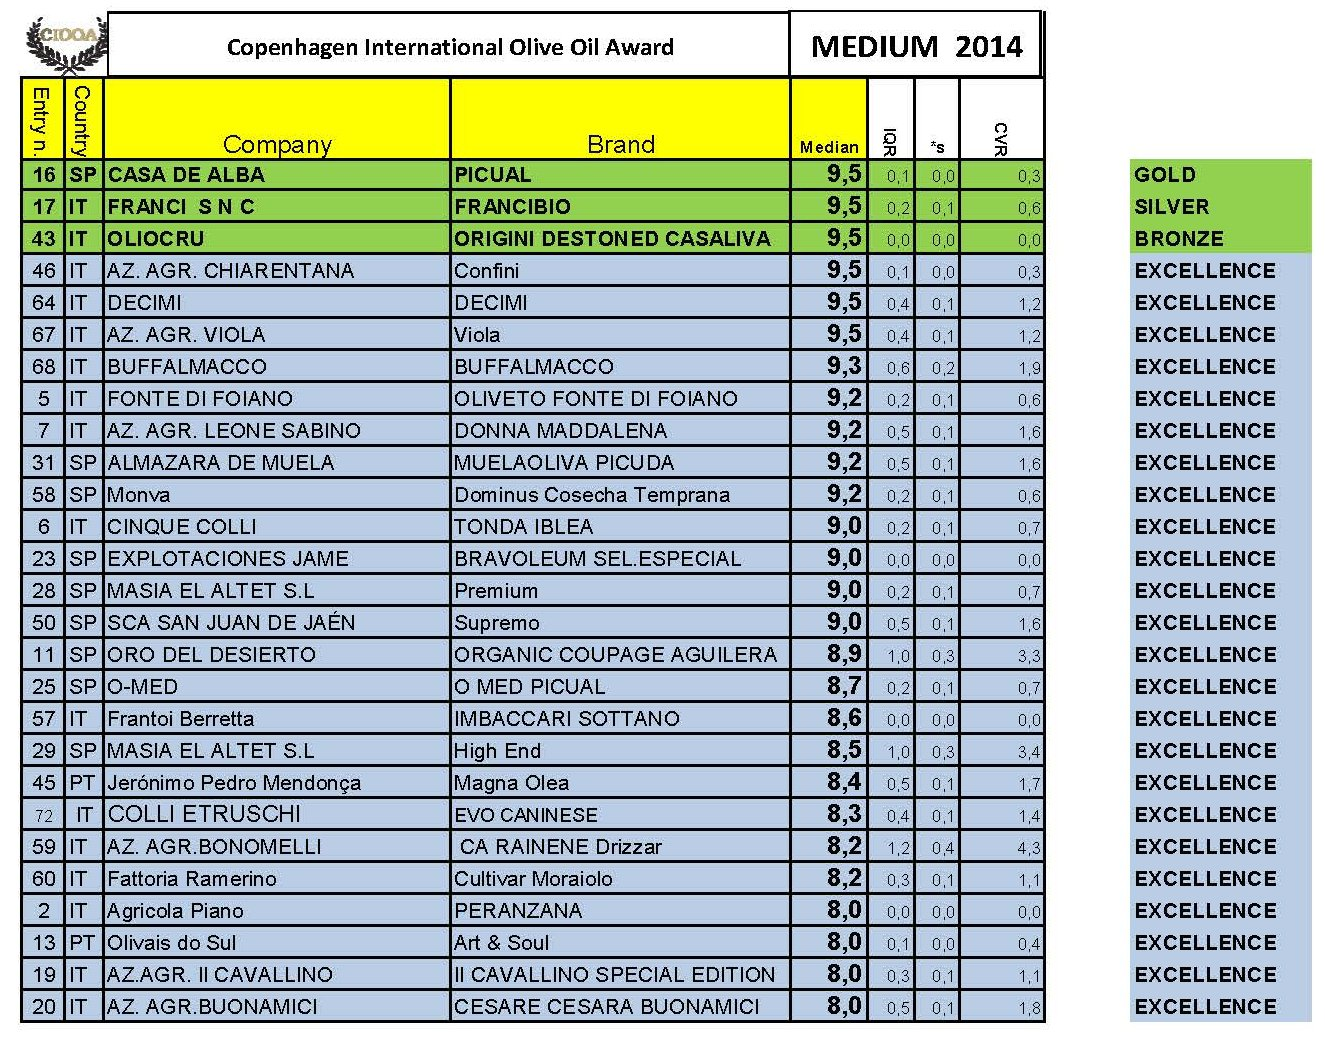 winners-list-medium-ciooa-2014